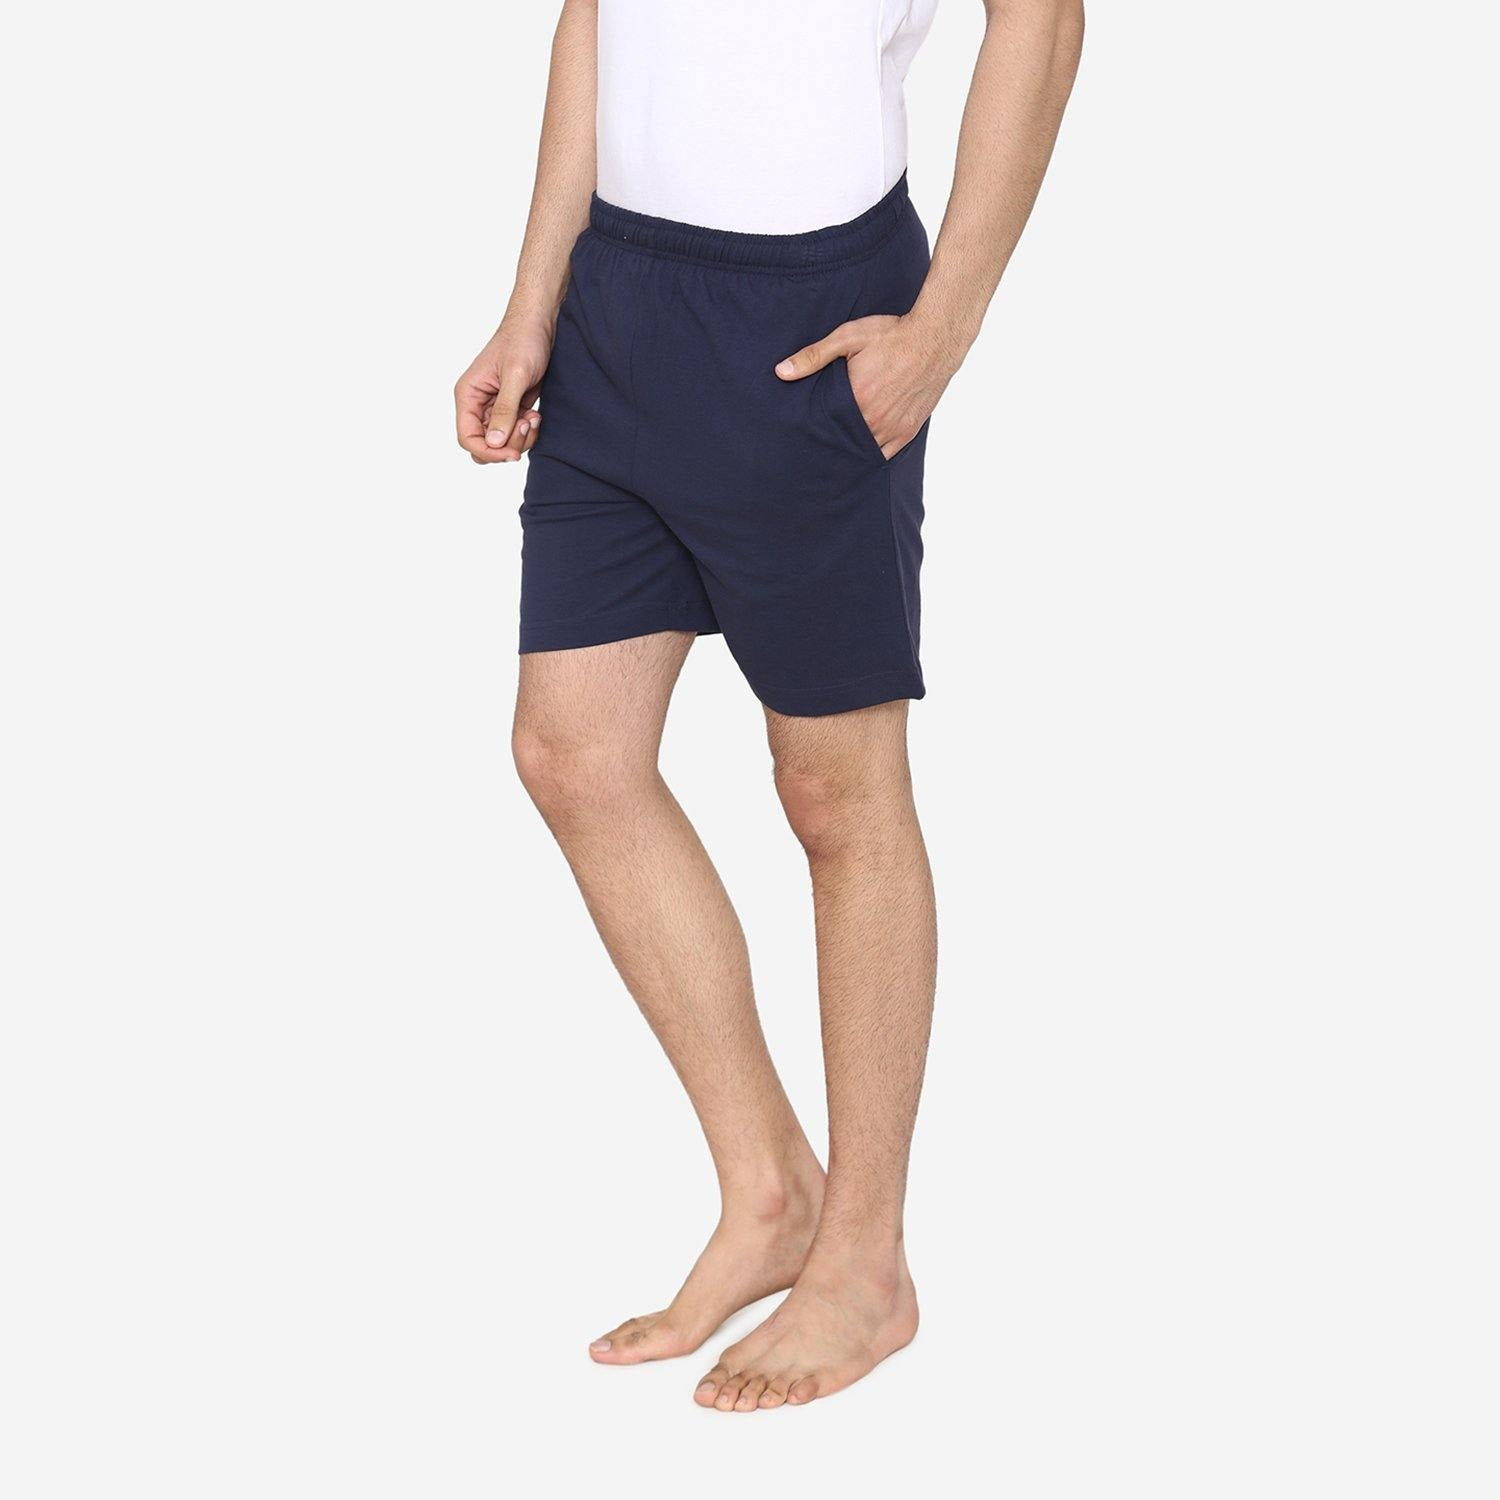 Men's Plain Comfy & Casual Shorts For Summer - Navy